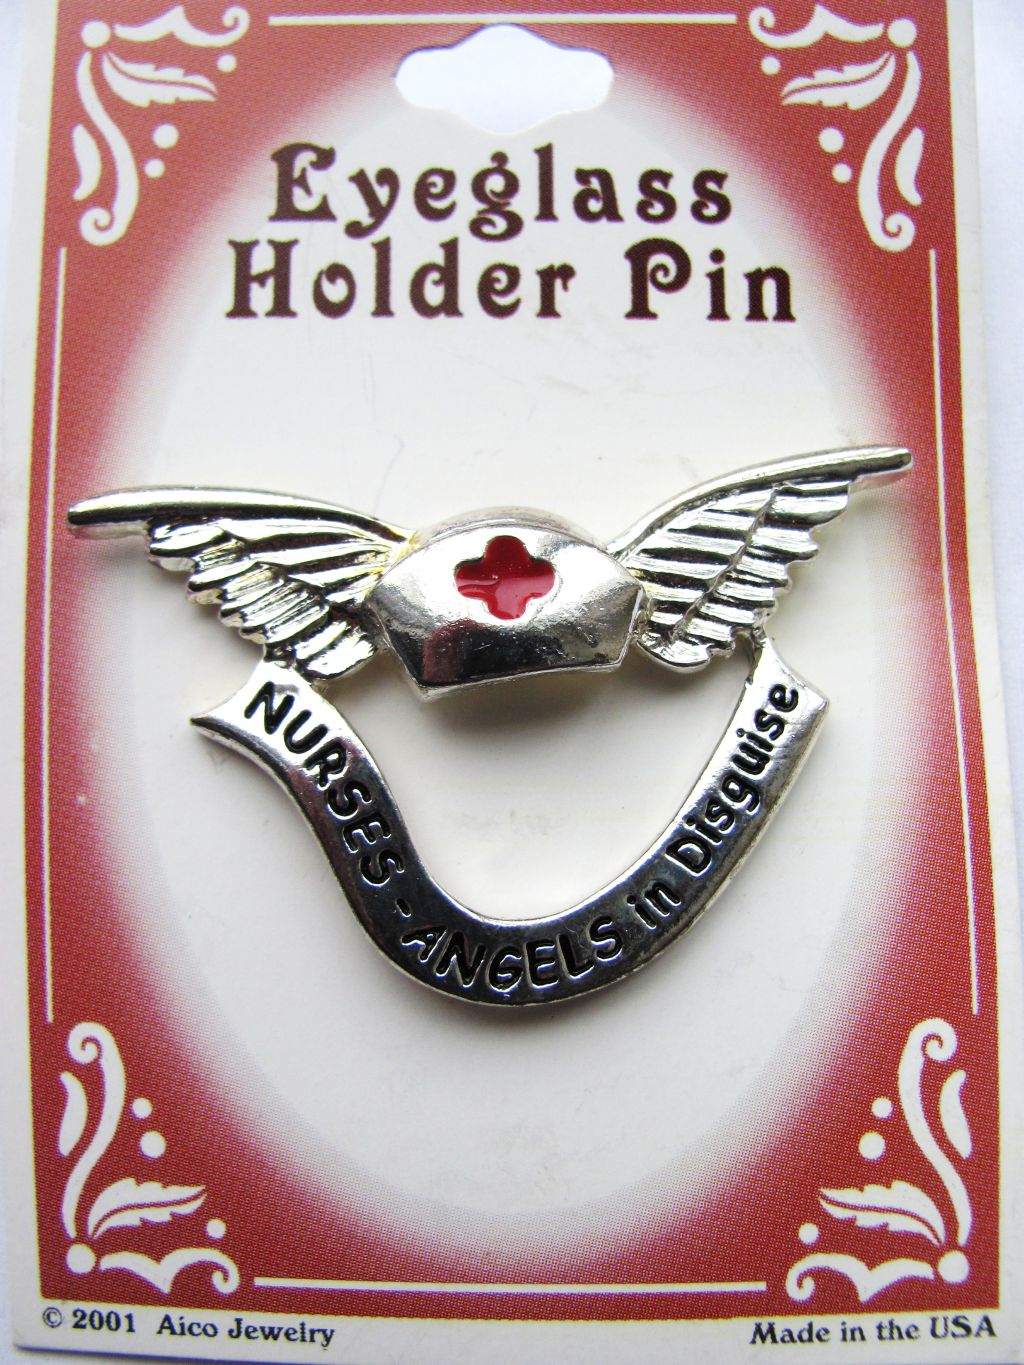 Red Cross Hat & Nurse Angel Silver Wings Eyeglass Holder Pin